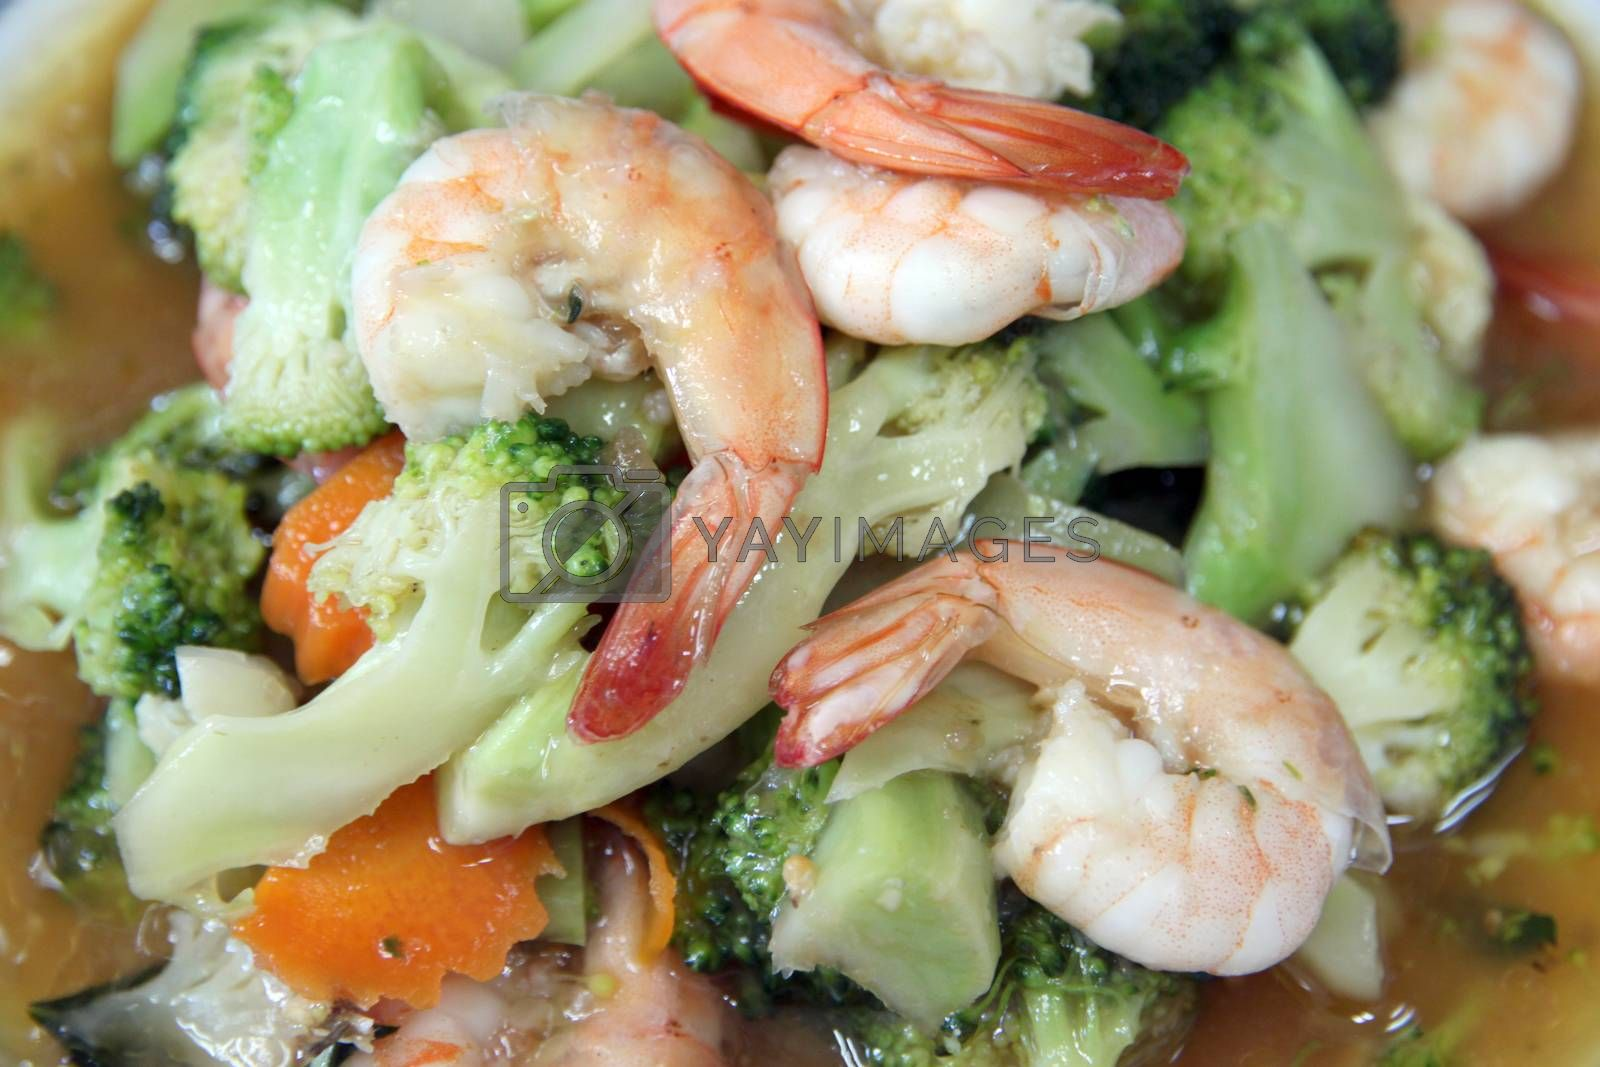 Shrimp fried vegetables in the dish.